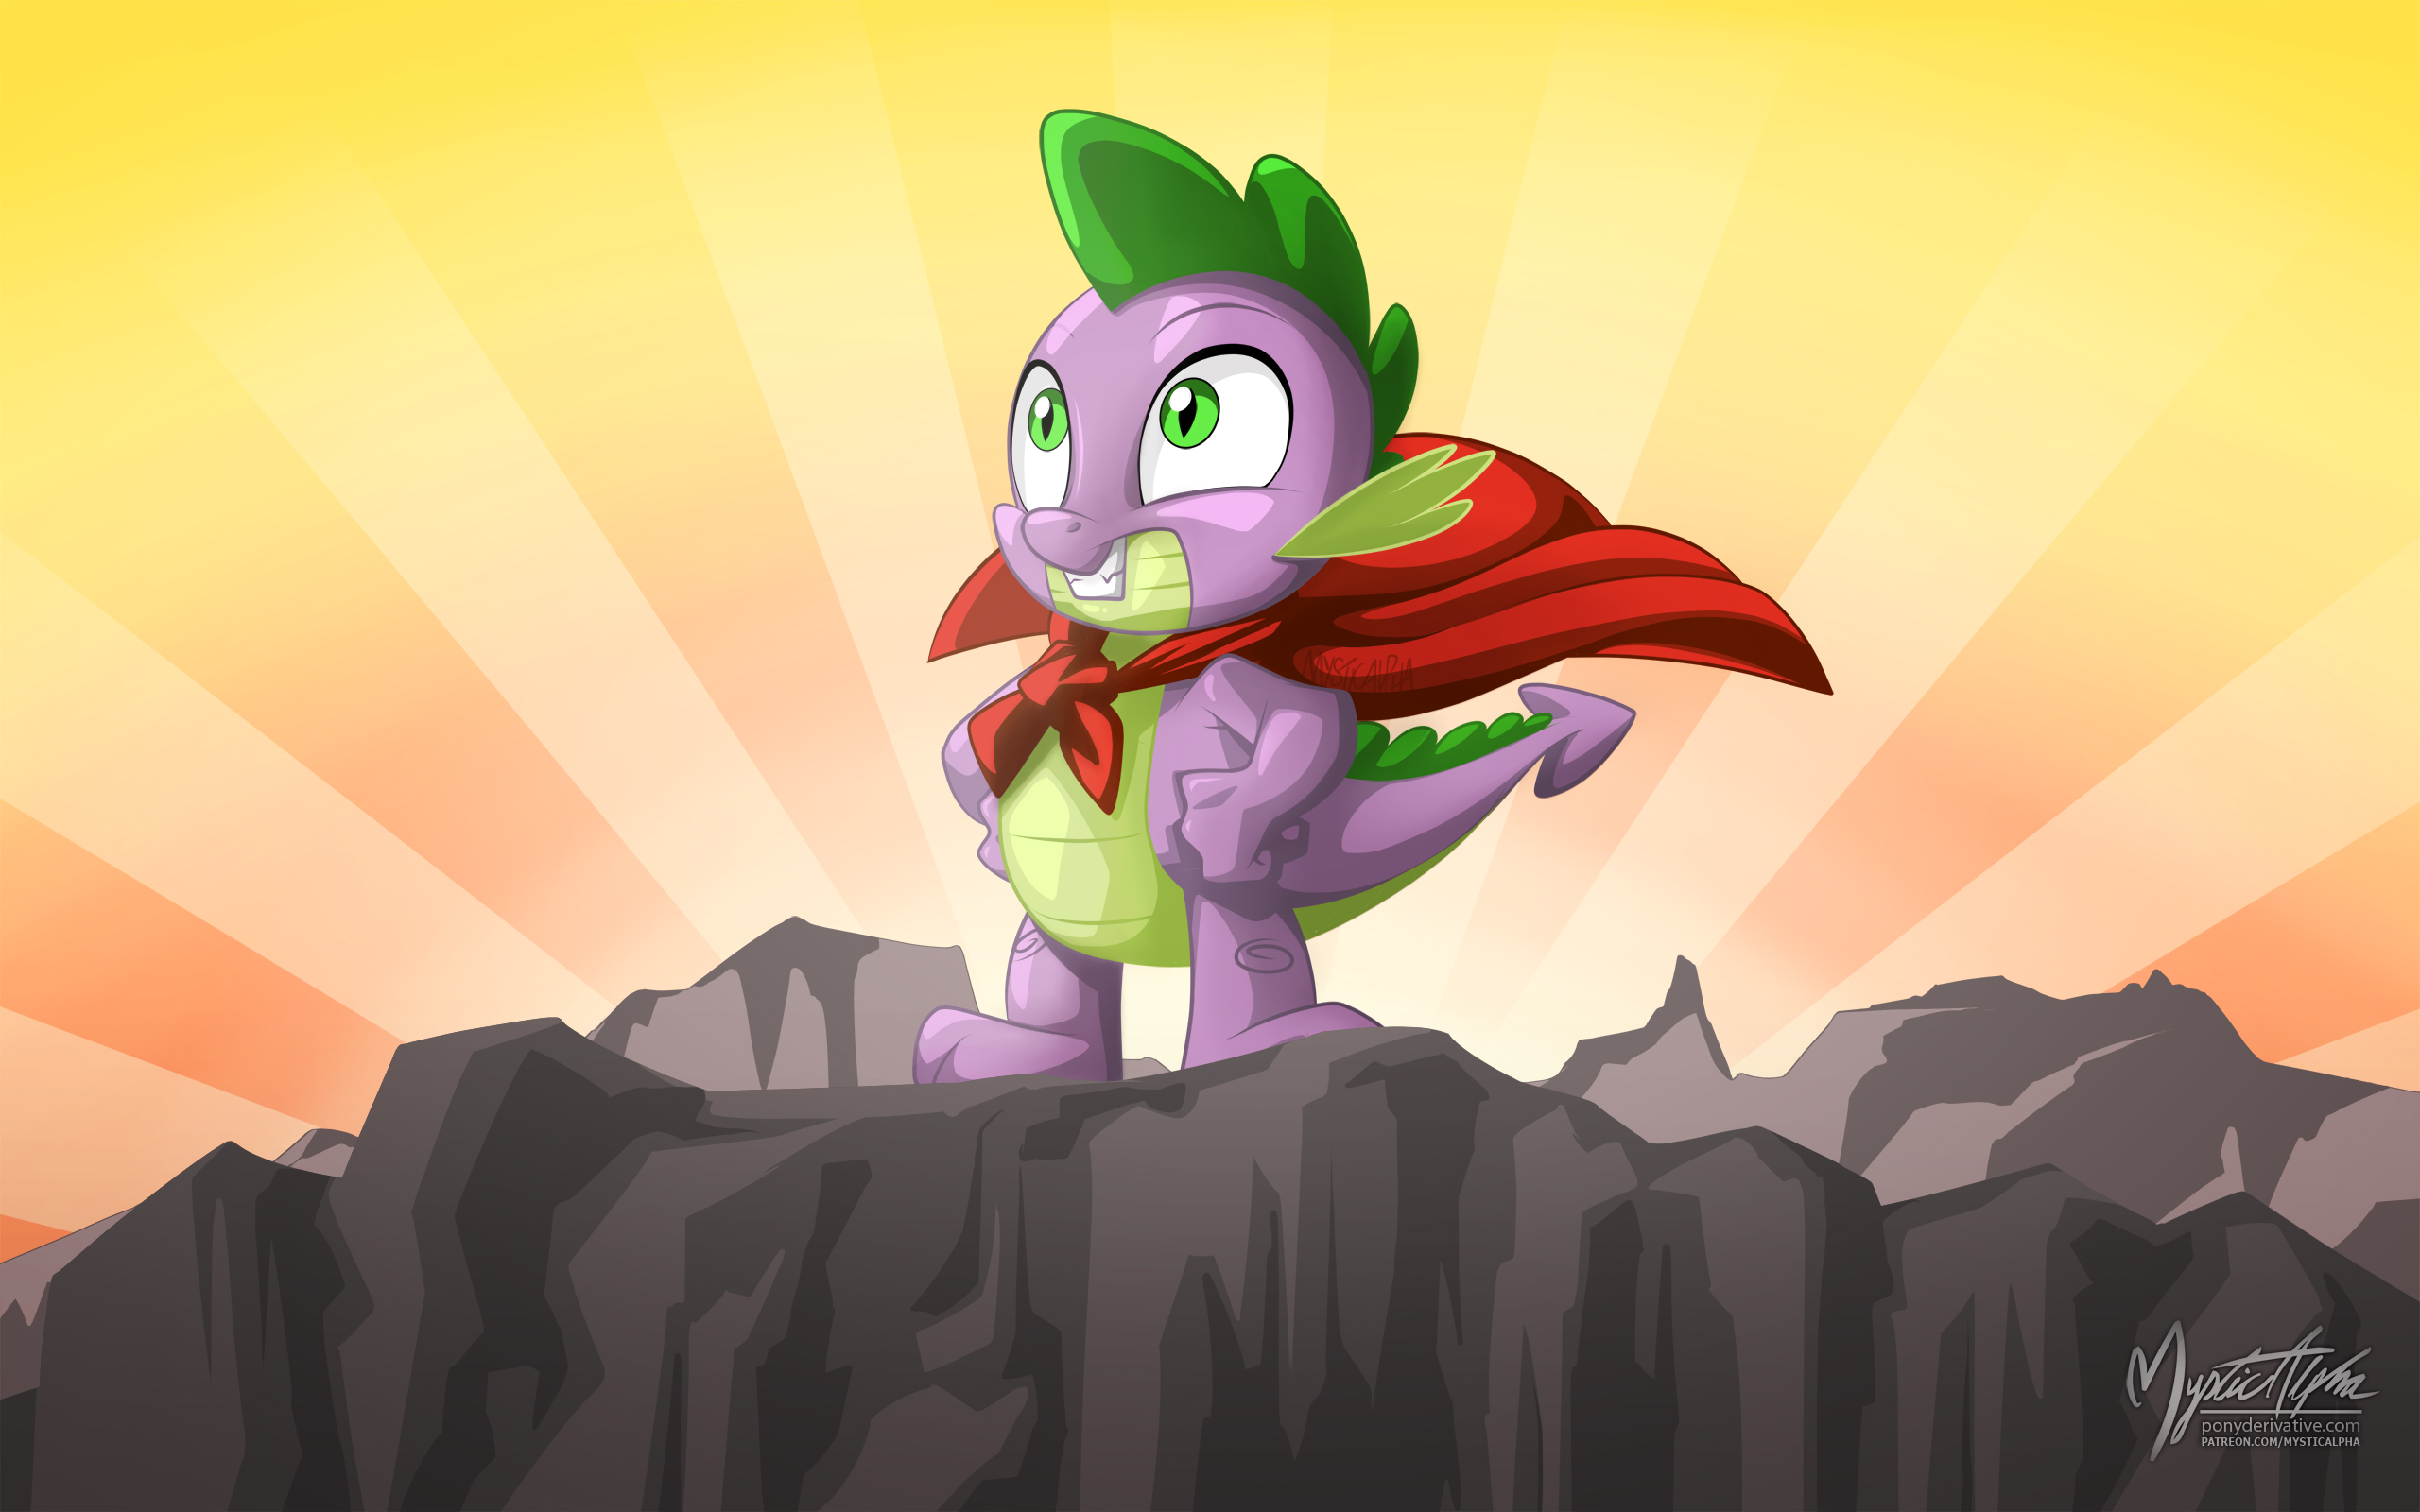 spike_the_hero_by_mysticalpha-d9z7p6h.jp